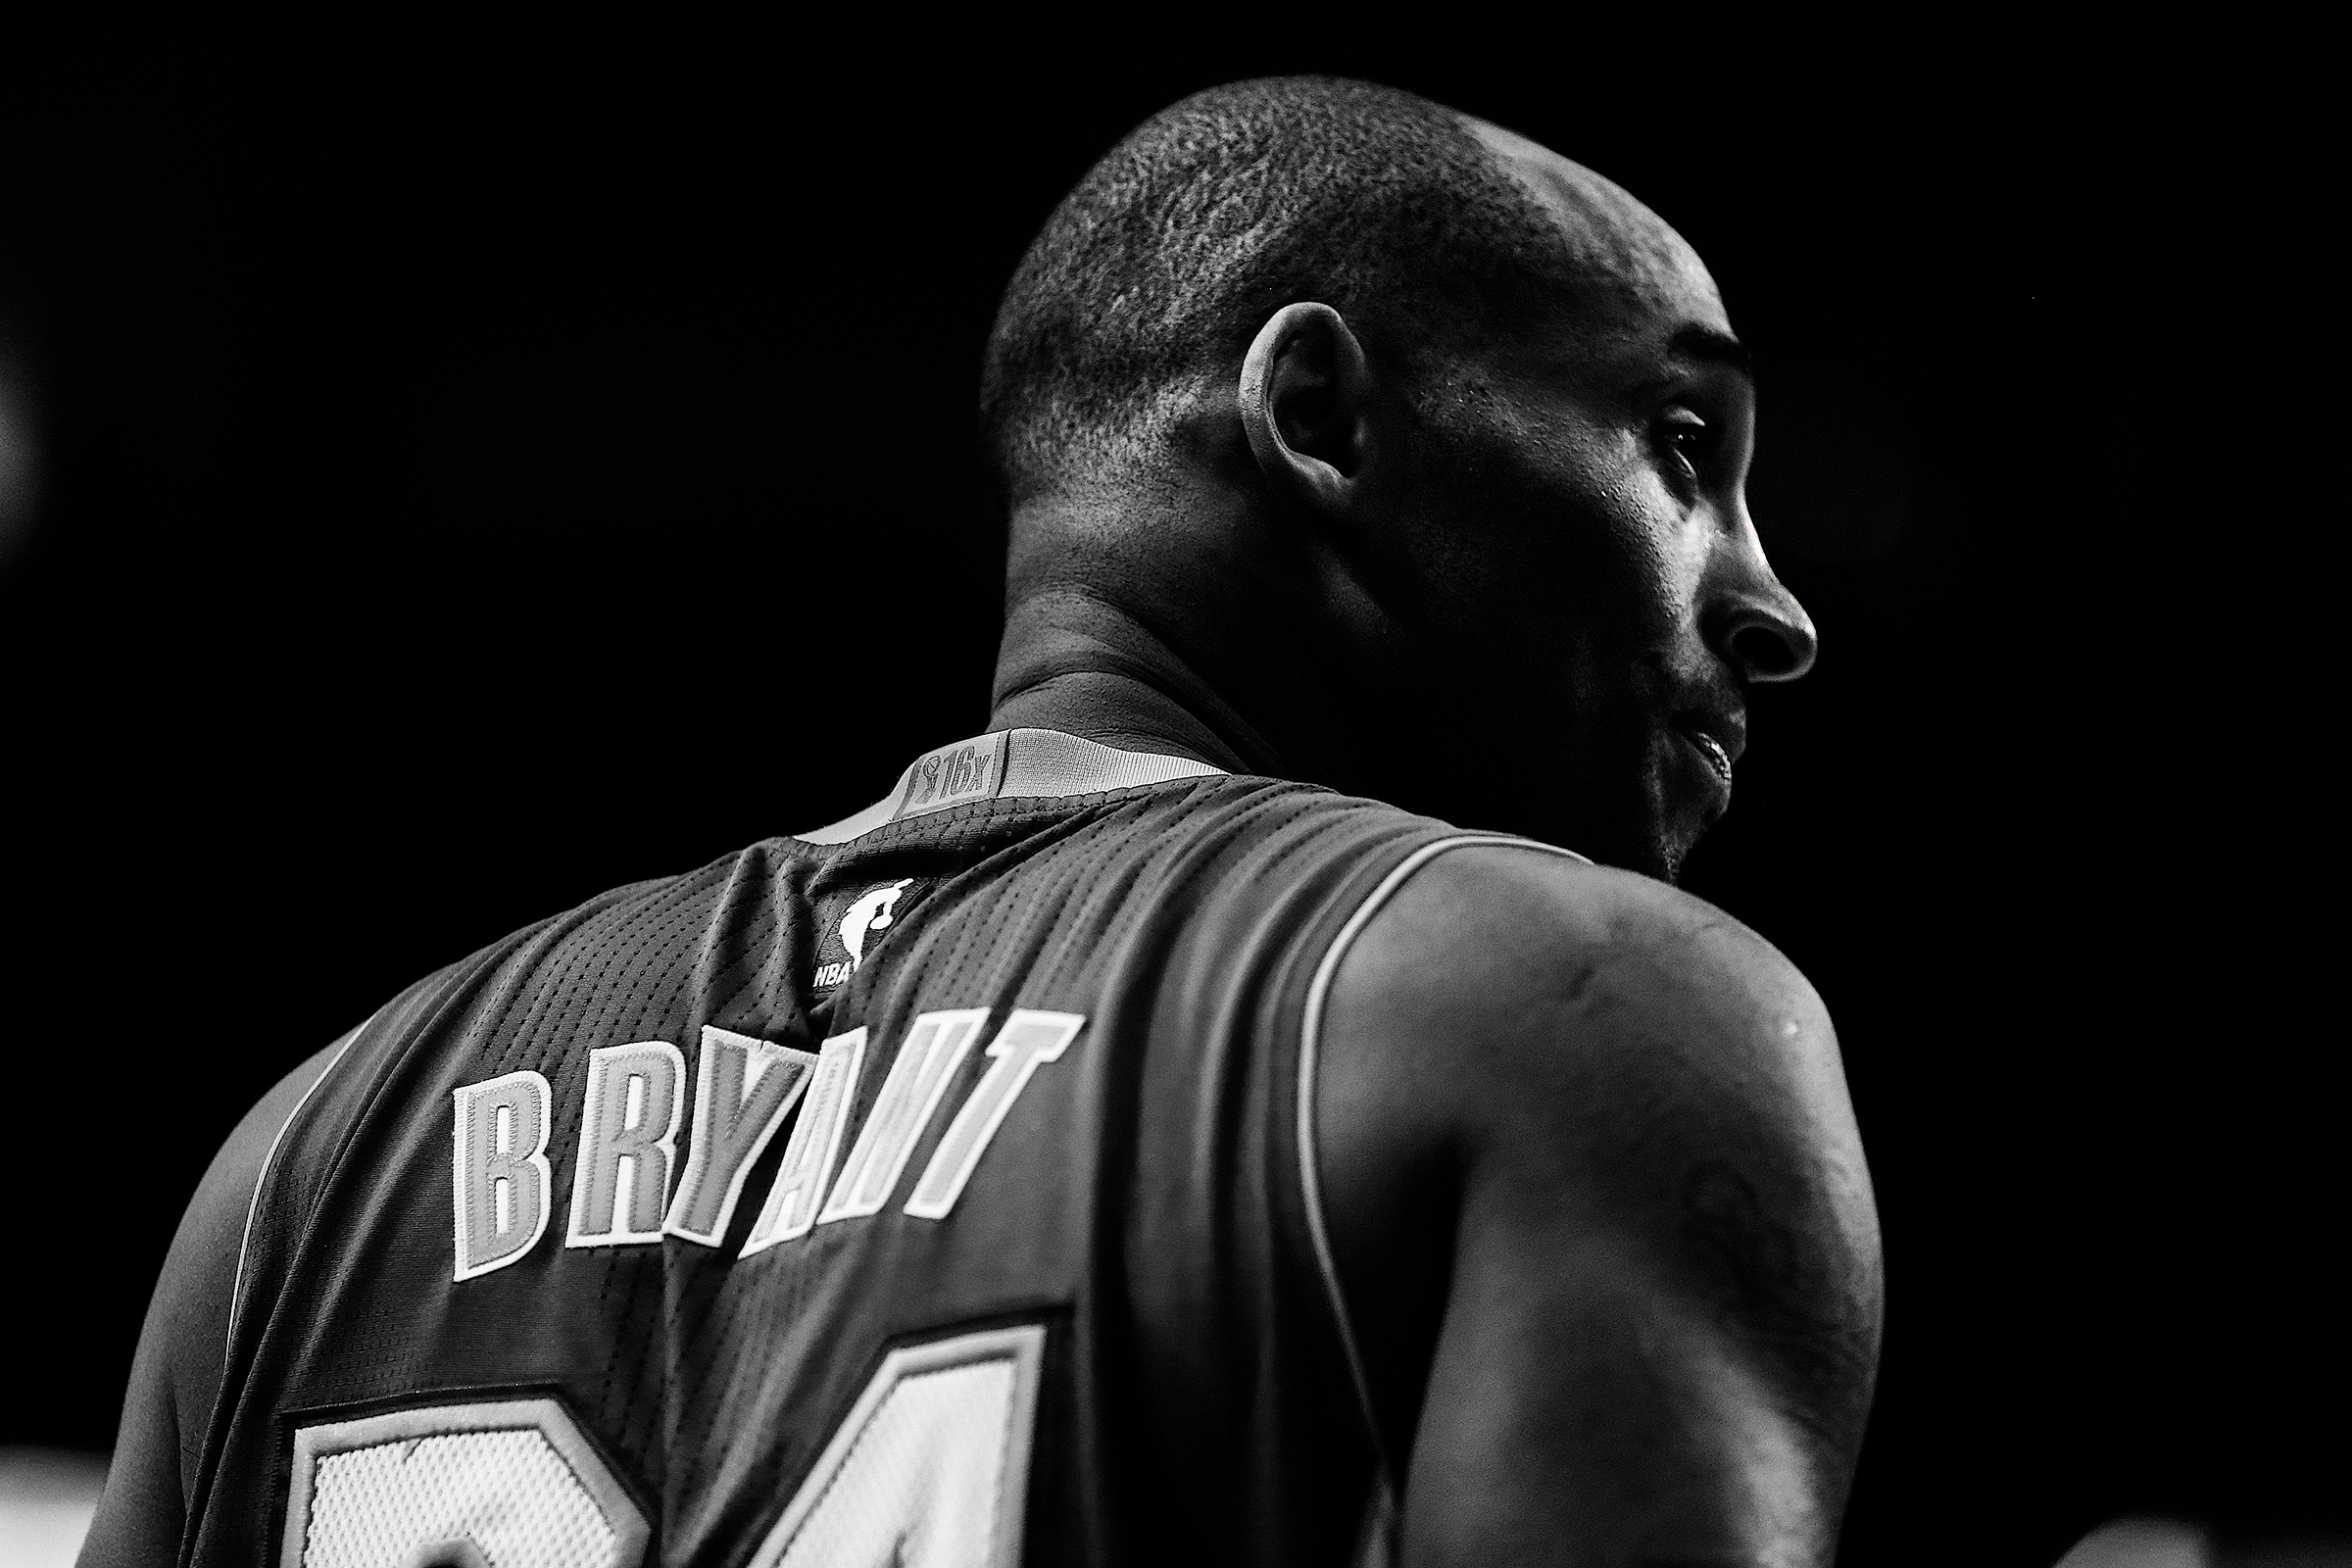 Kobe Bryant during a game against the Houston Rockets on April 10, 2016.